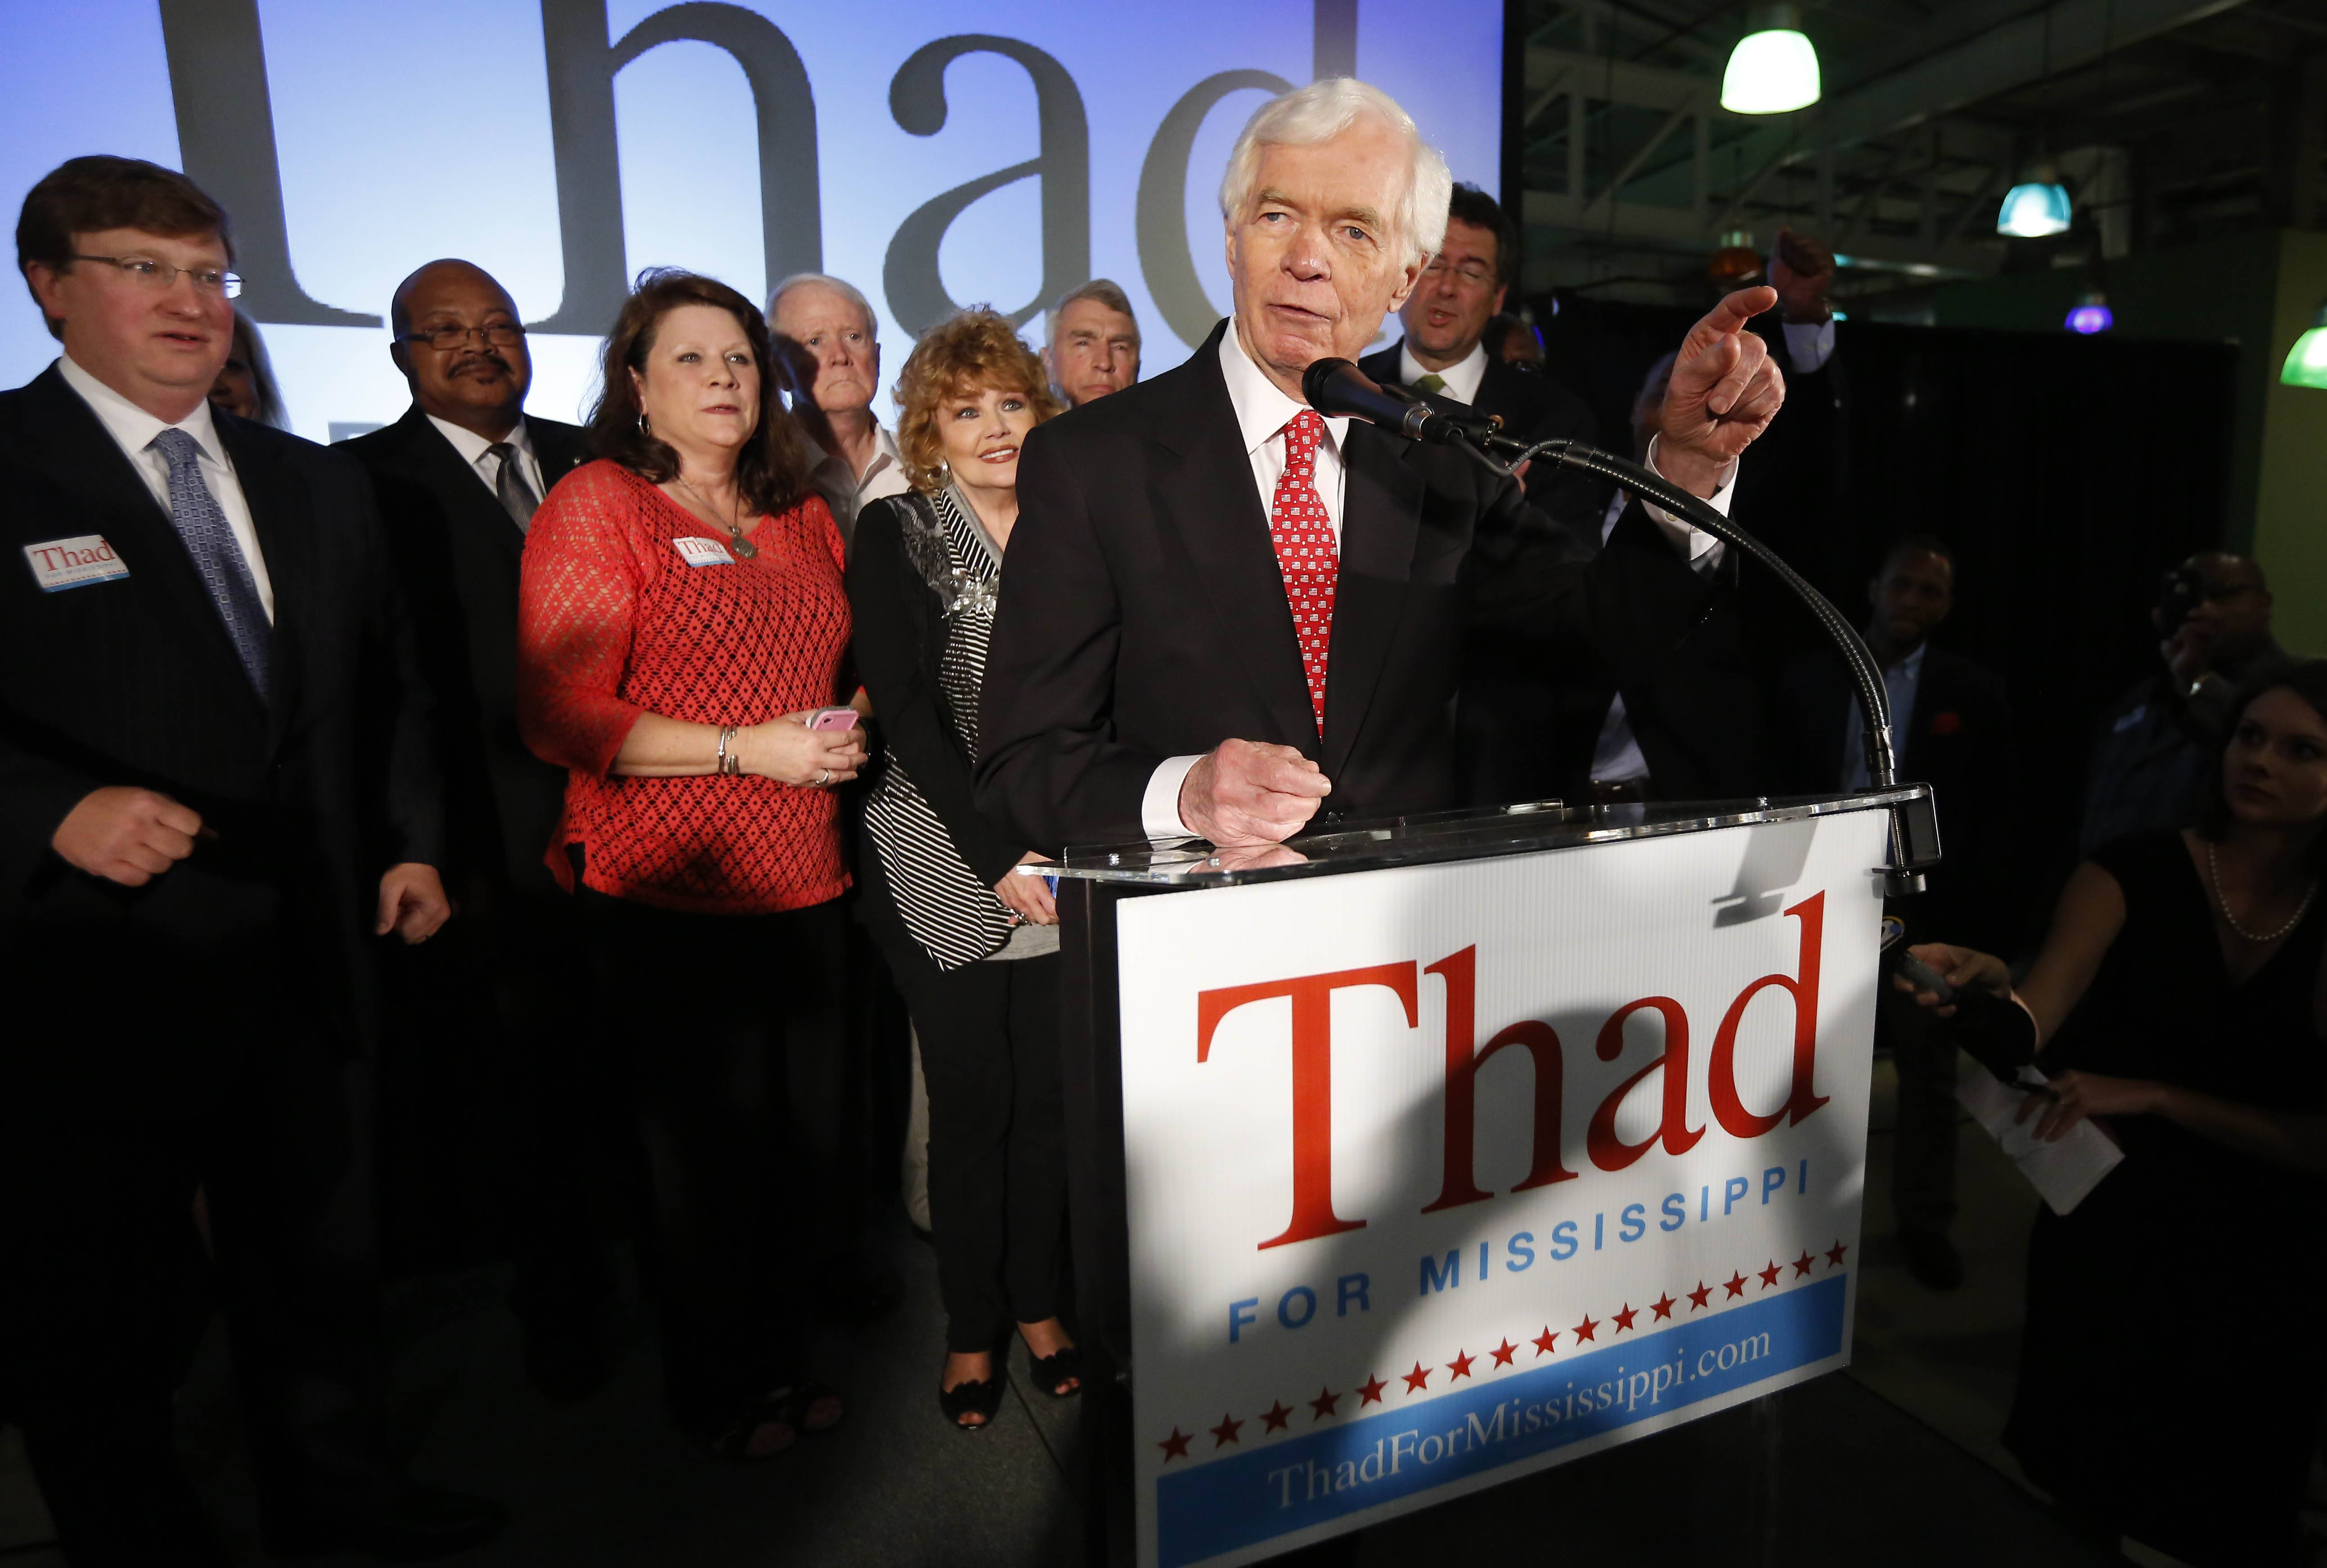 U.S. Sen. Thad Cochran, R-Miss., addresses supporters and volunteers at his runoff election victory party Tuesday, June 24, 2014, at the Mississippi Children's Museum in Jackson, Miss. Cochran defeated state Sen. Chris McDaniel of Ellisville, in a primary runoff for the GOP nomination for senate.